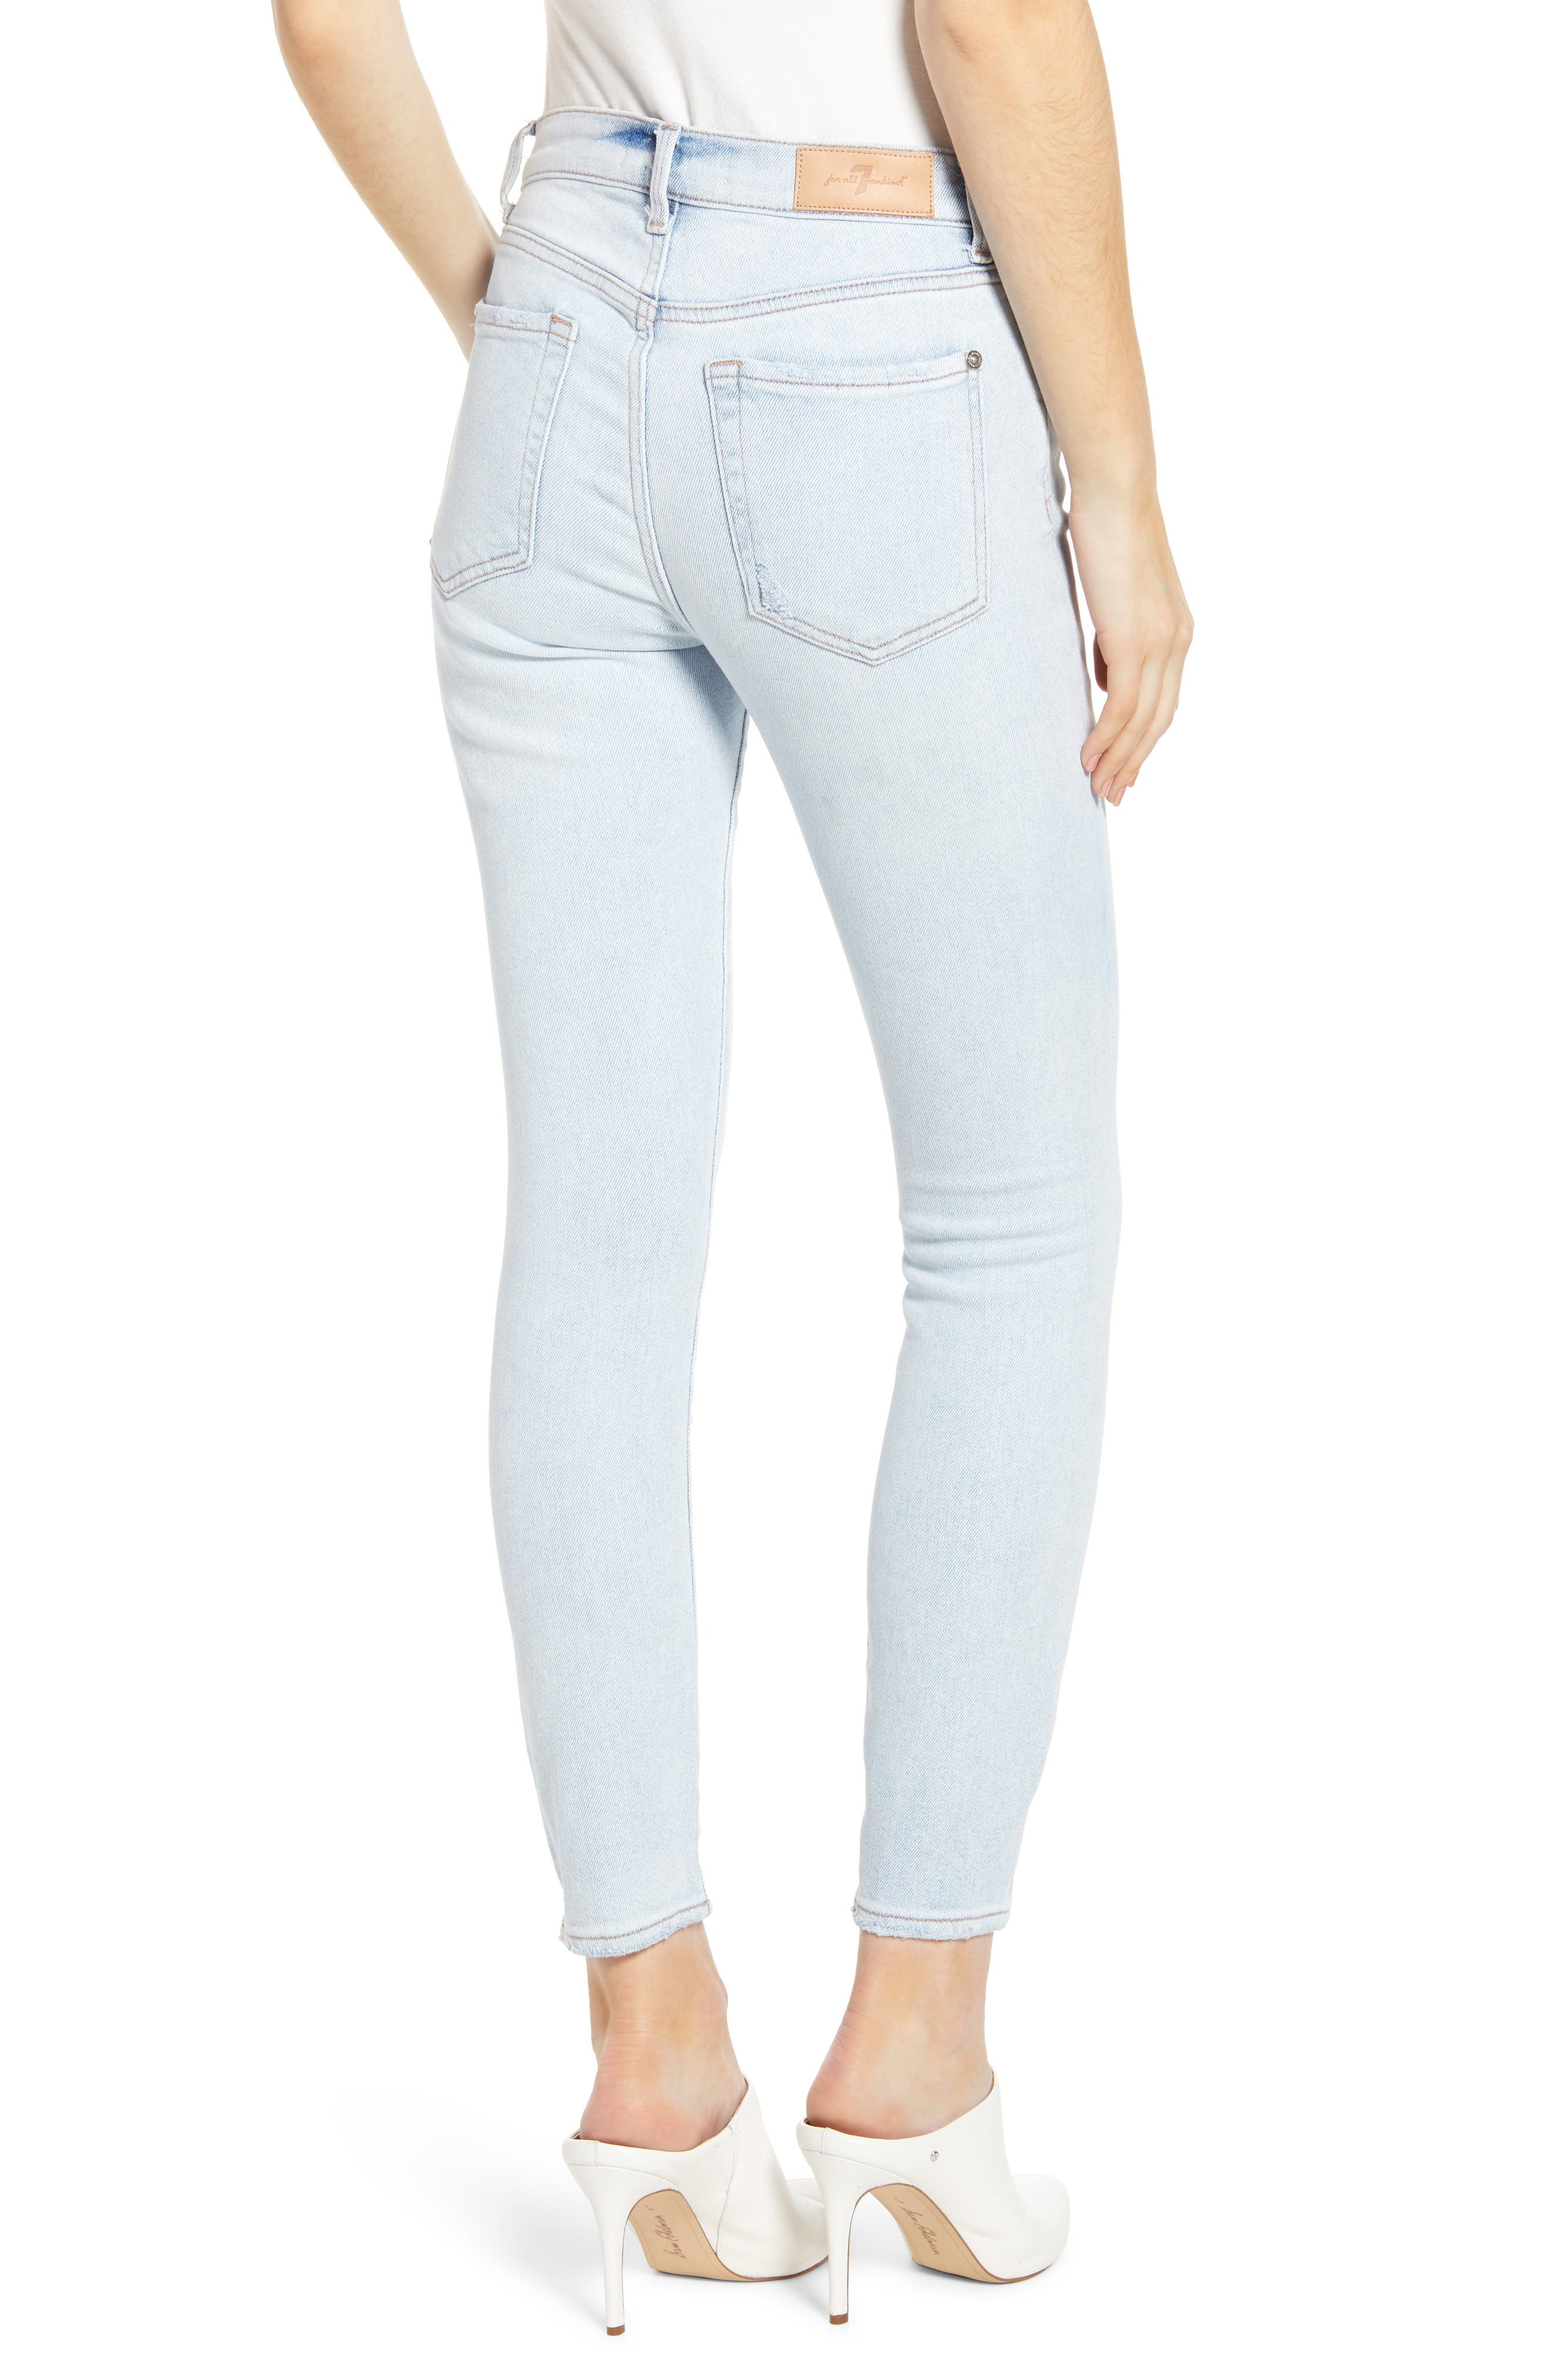 7 FOR ALL MANKIND<SUP>®</SUP>, Luxe Vintage High Waist Ankle Skinny Jeans, Alternate thumbnail 2, color, LUXE VINTAGE CLOUD